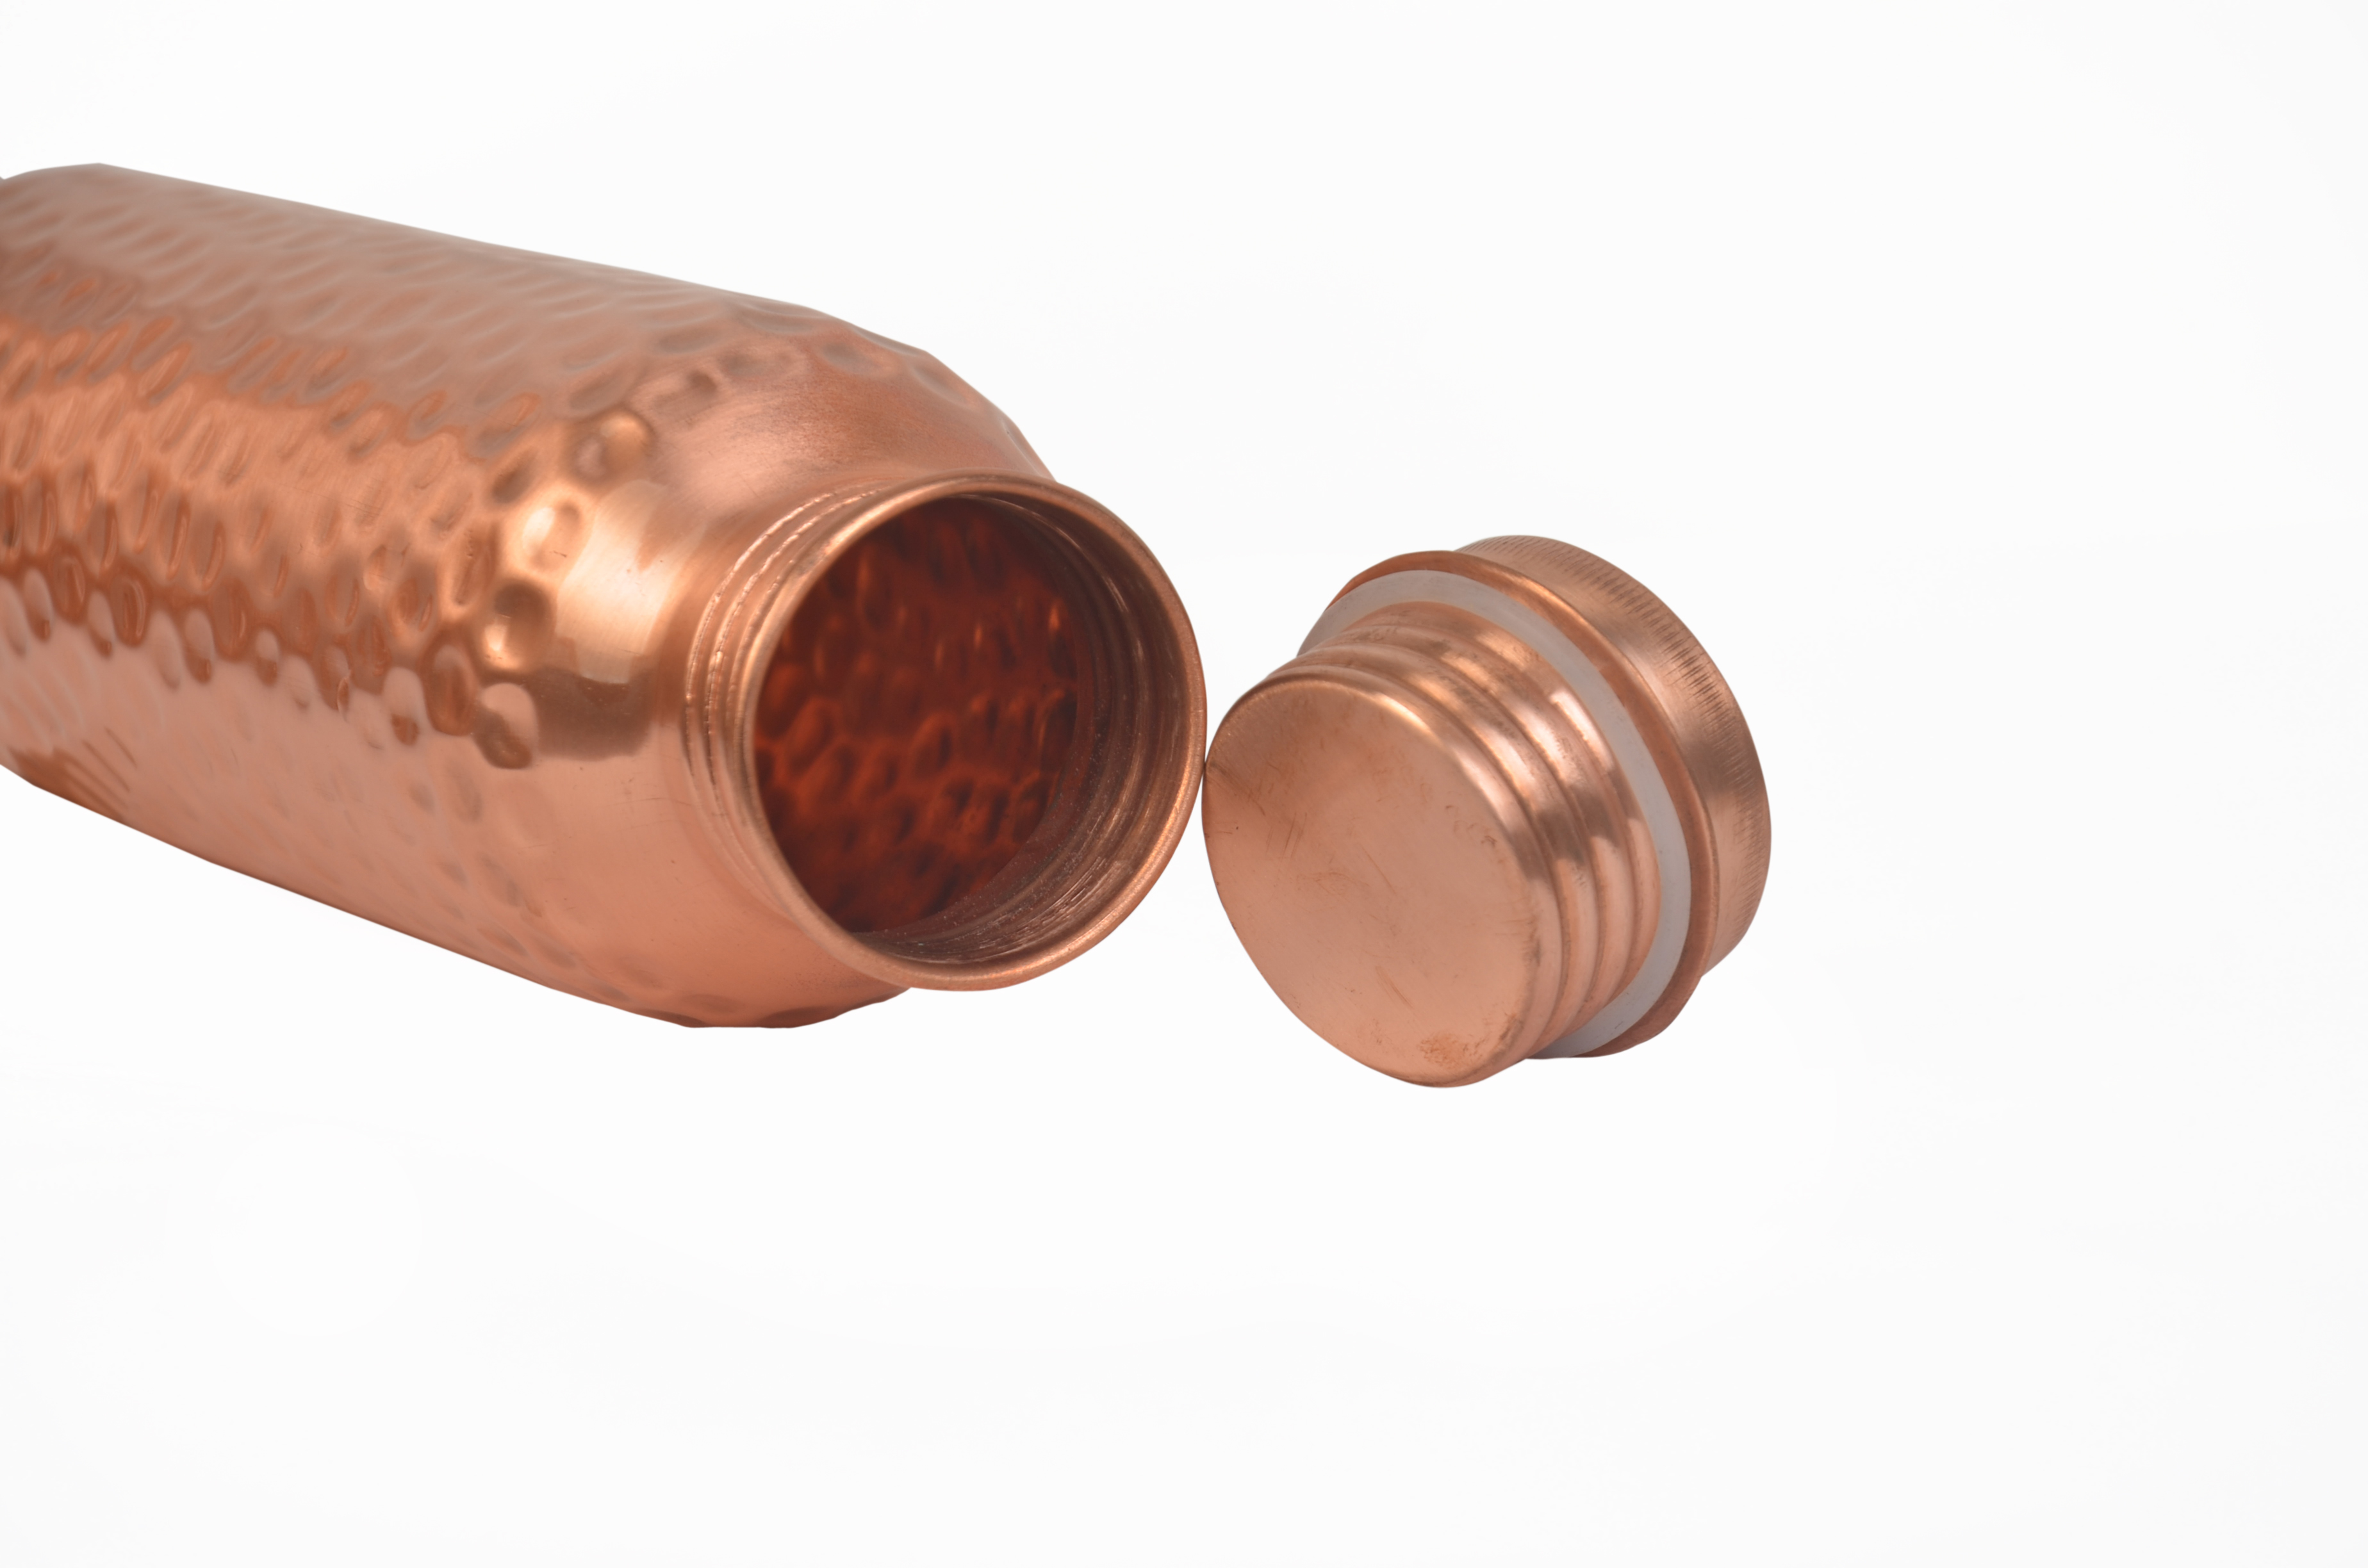 CopperKing Pure Copper Hammered Bottle